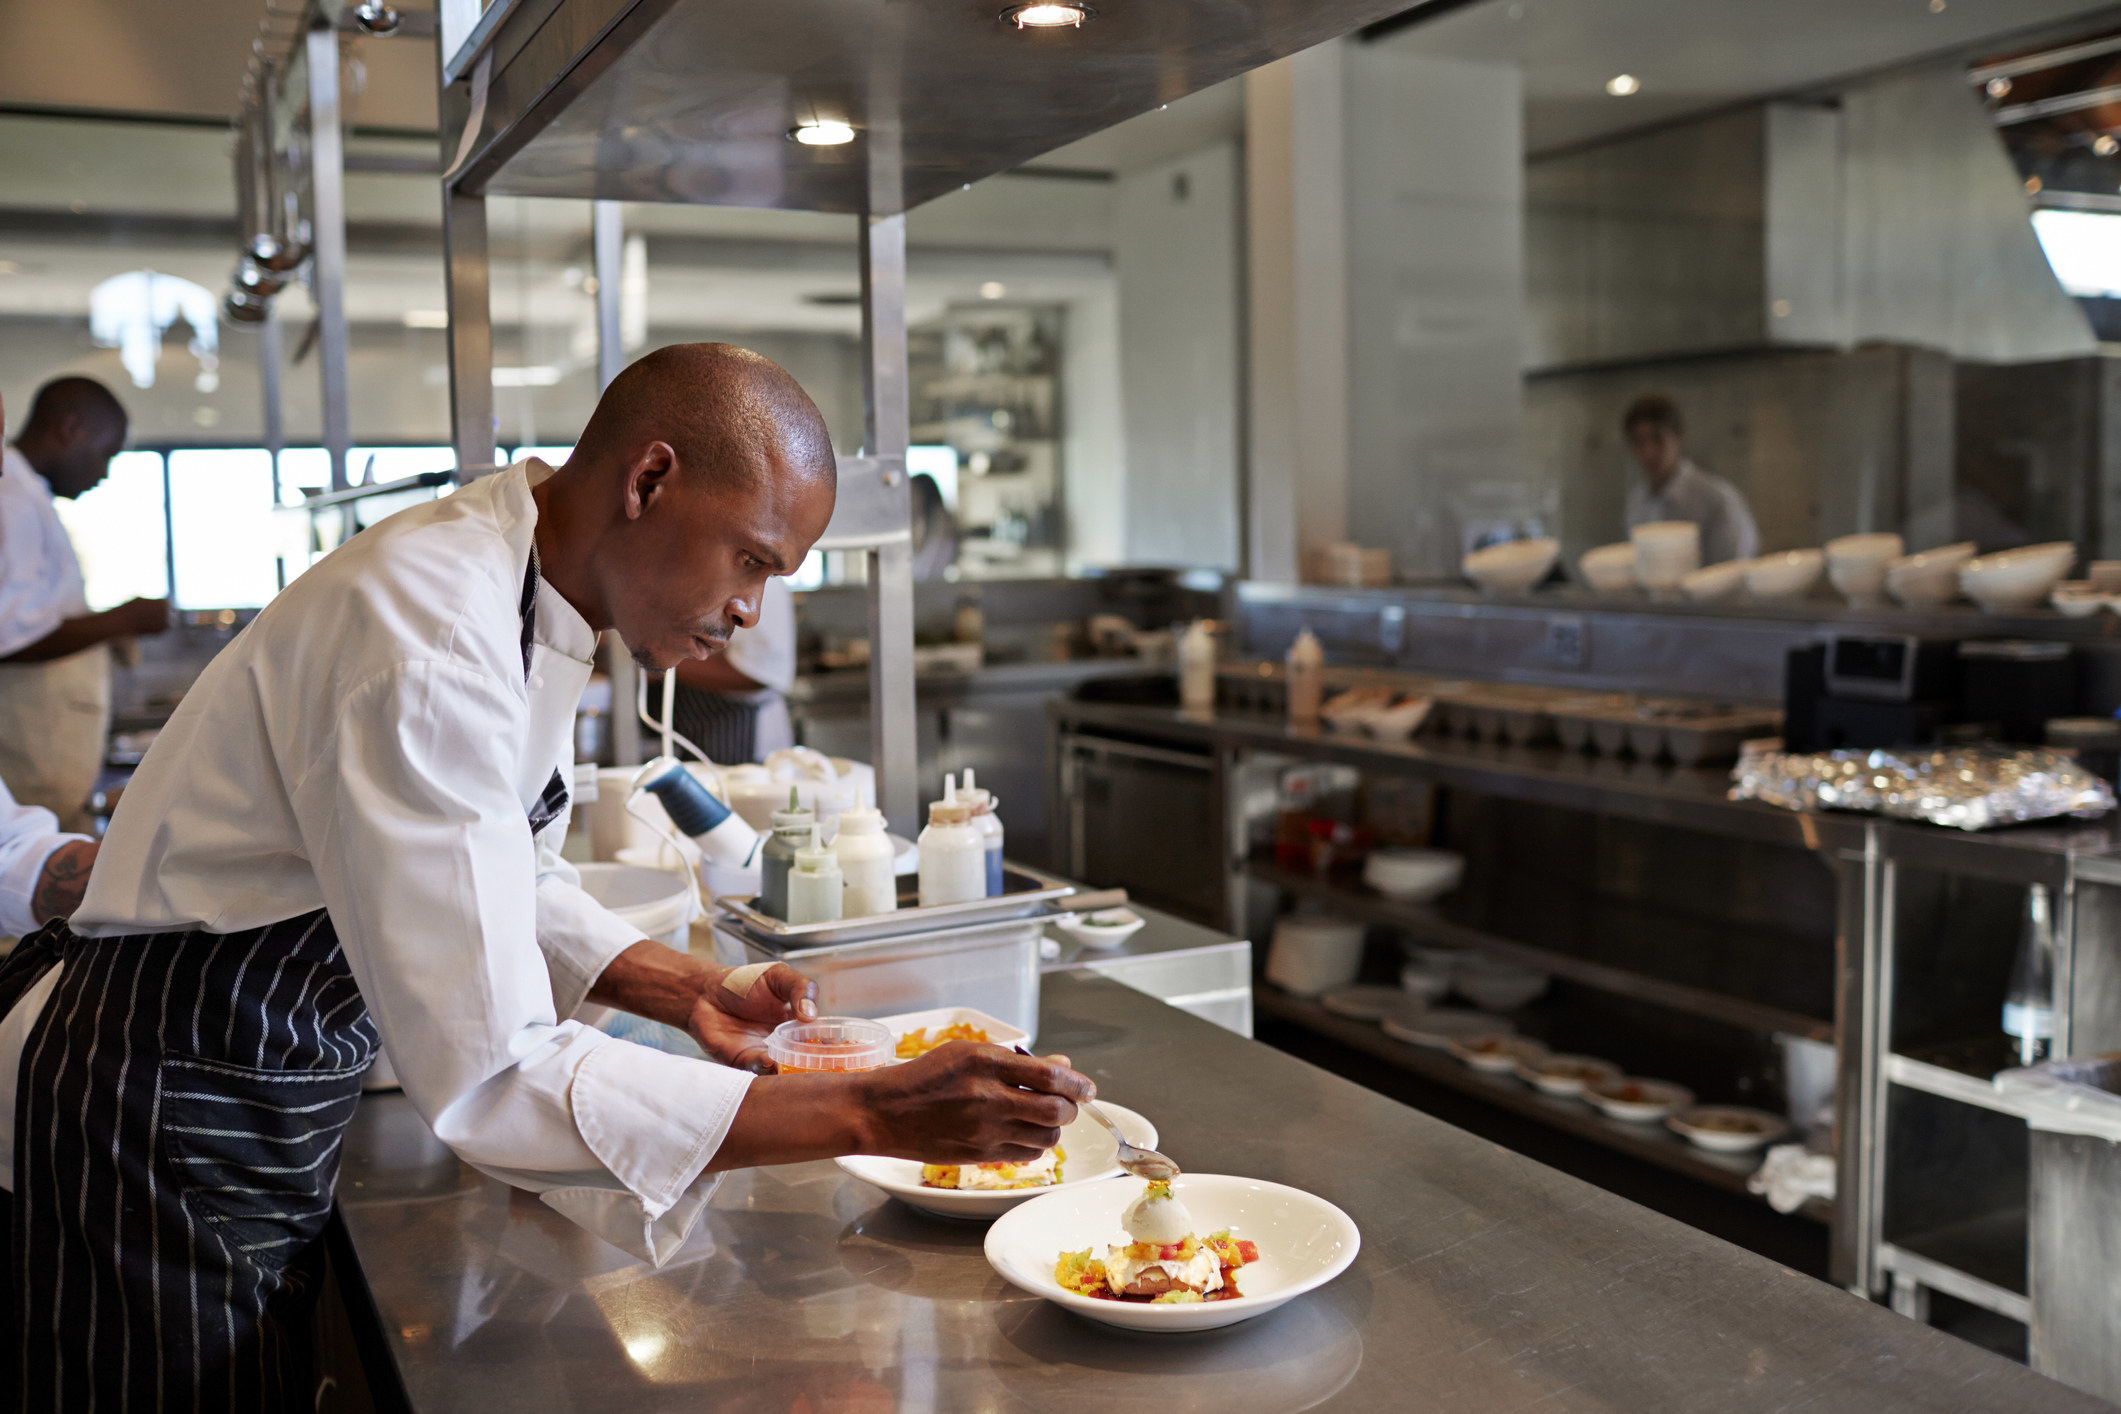 A chef sprucing up a dish in the kitchen